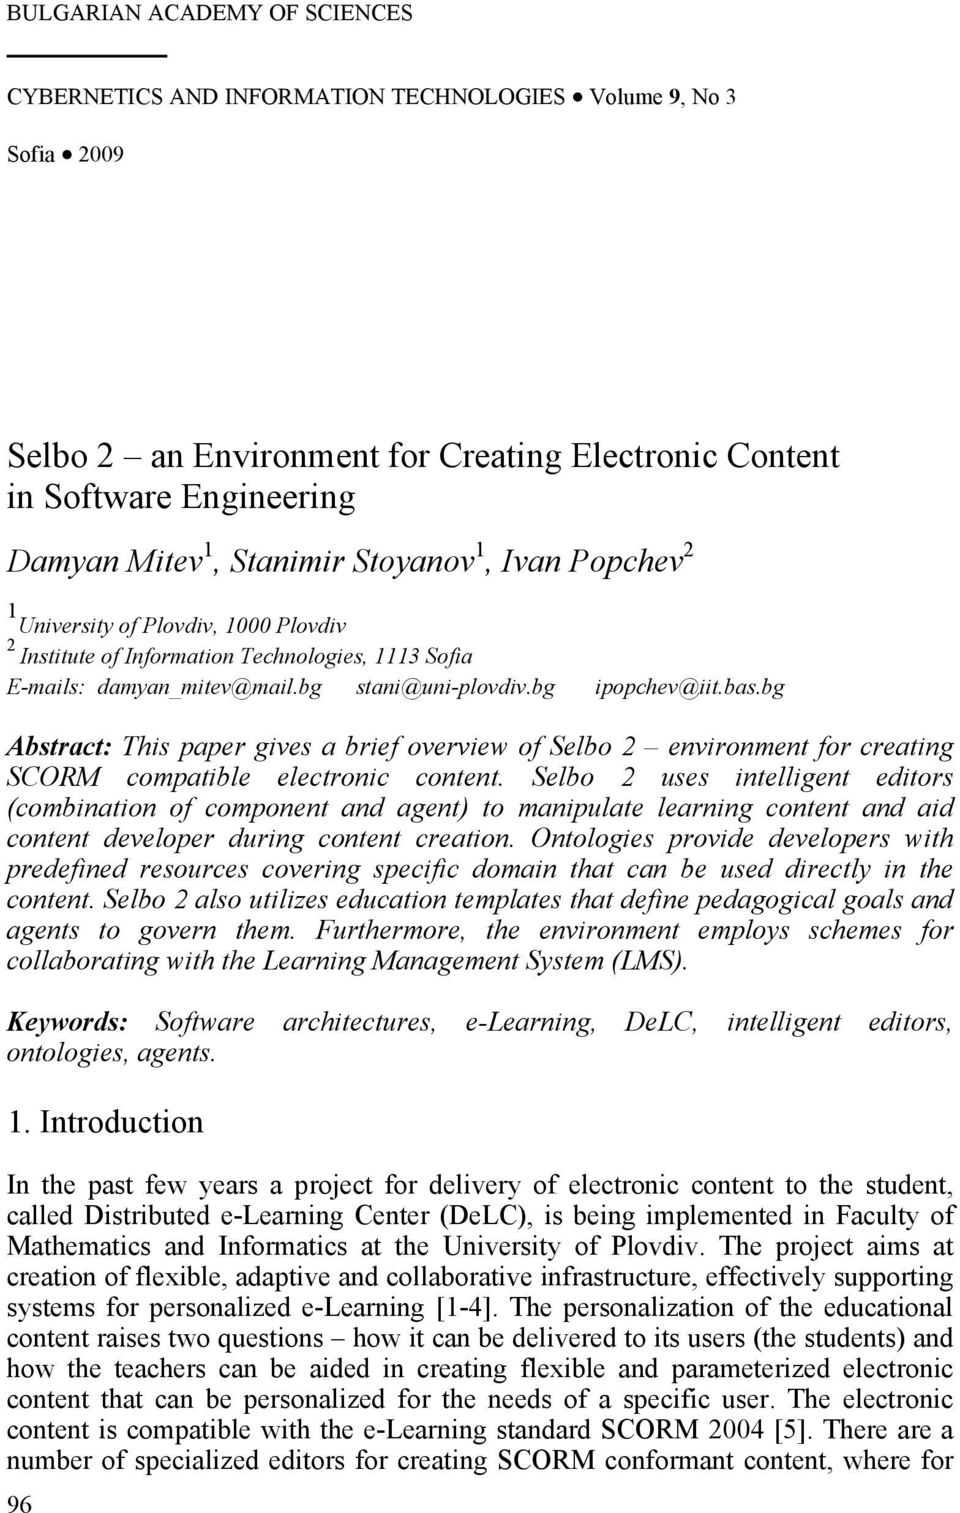 bg Abstract: This paper gives a brief overview of Selbo 2 environment for creating SCORM compatible electronic content.